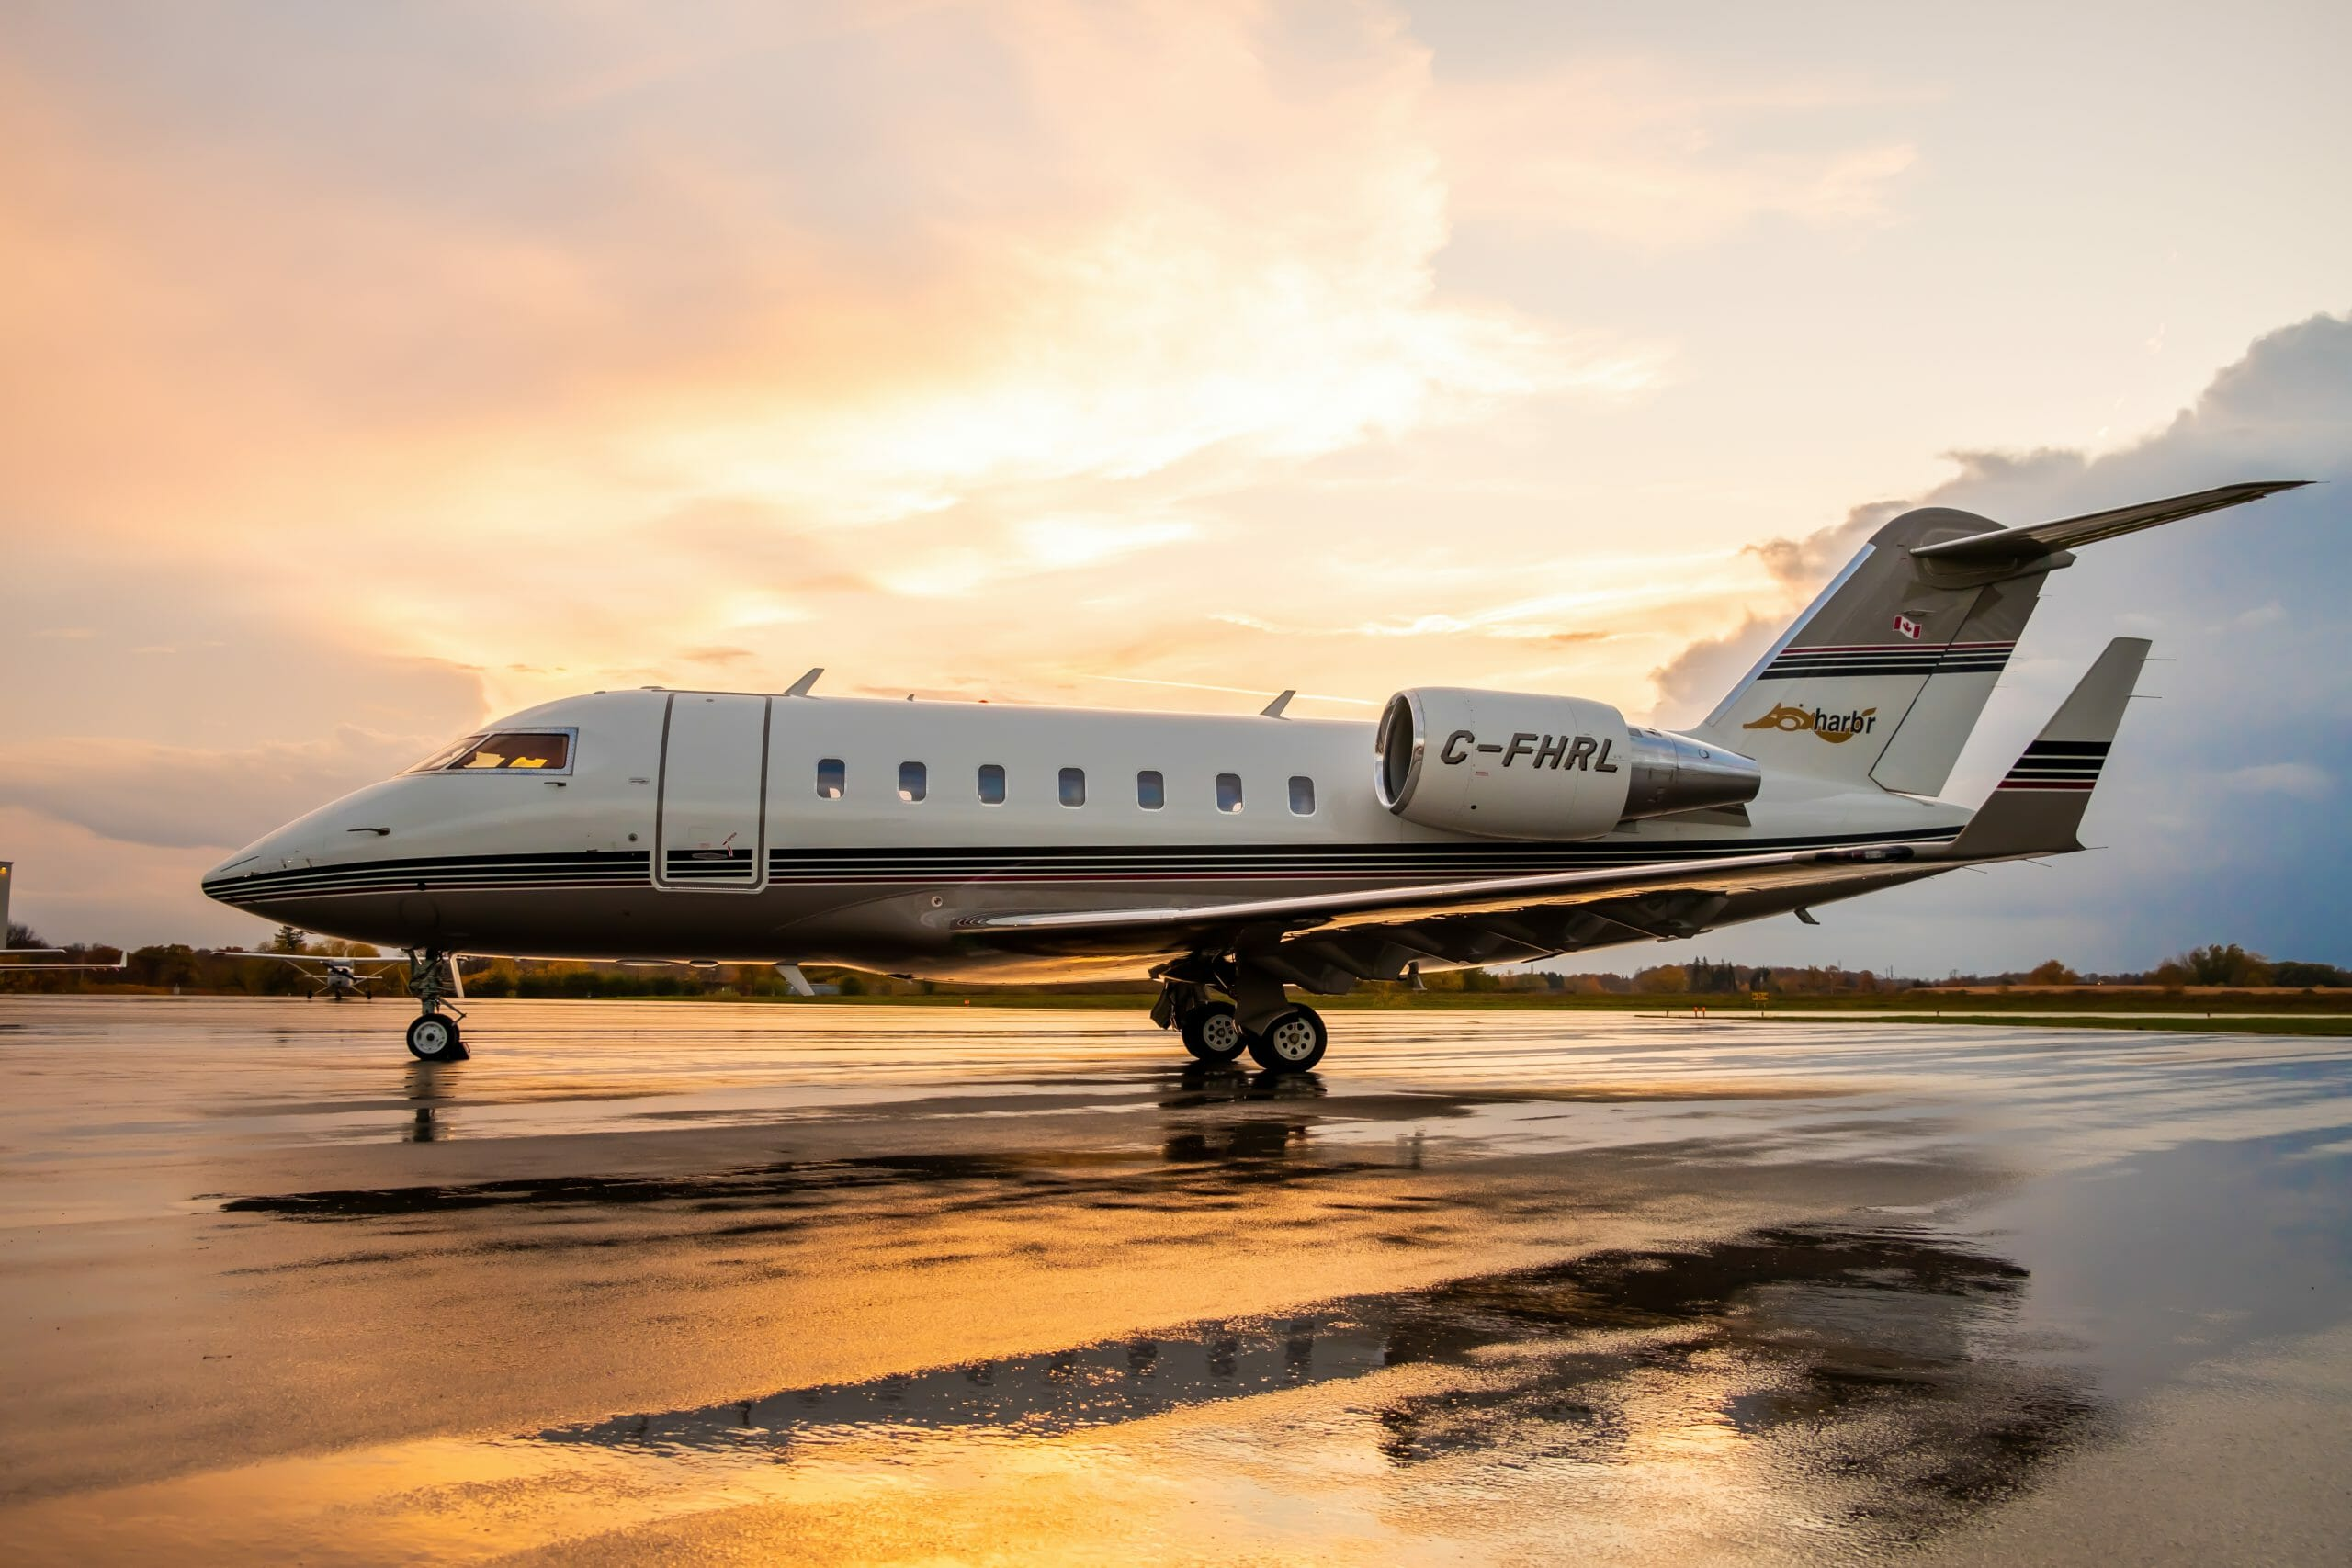 Private jet, grounded, in front of a sunset